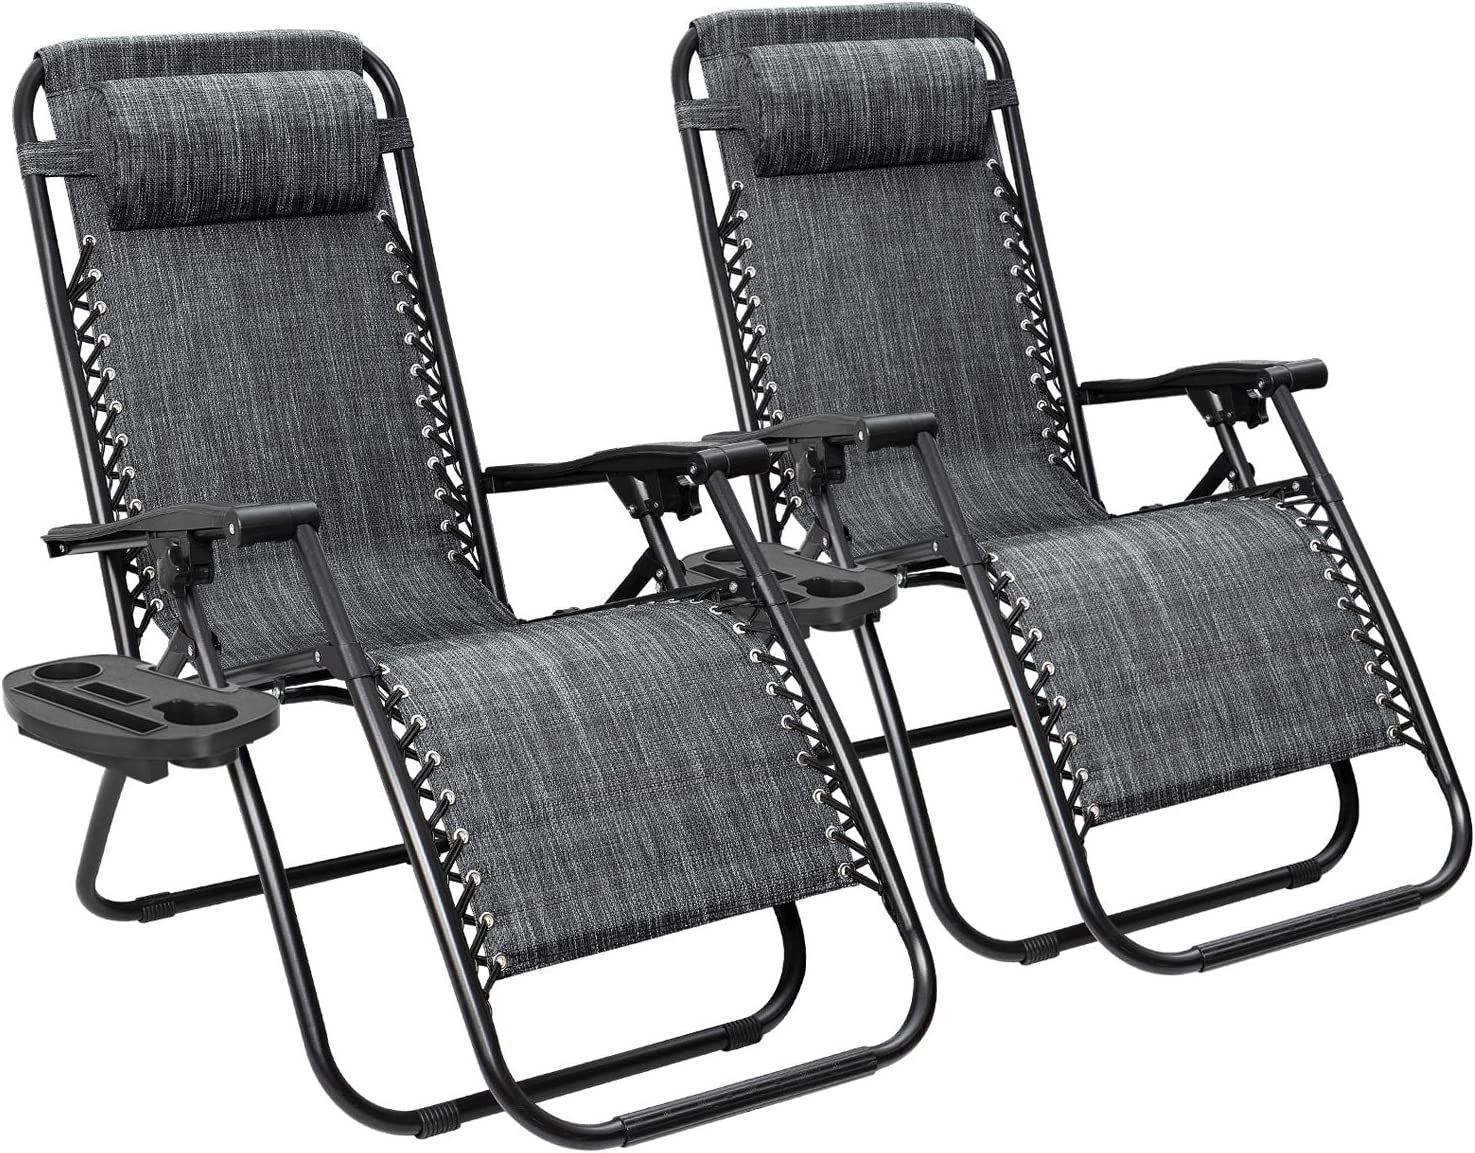 Best Reclining Patio Chairs (2020): Top 10 Ever 3